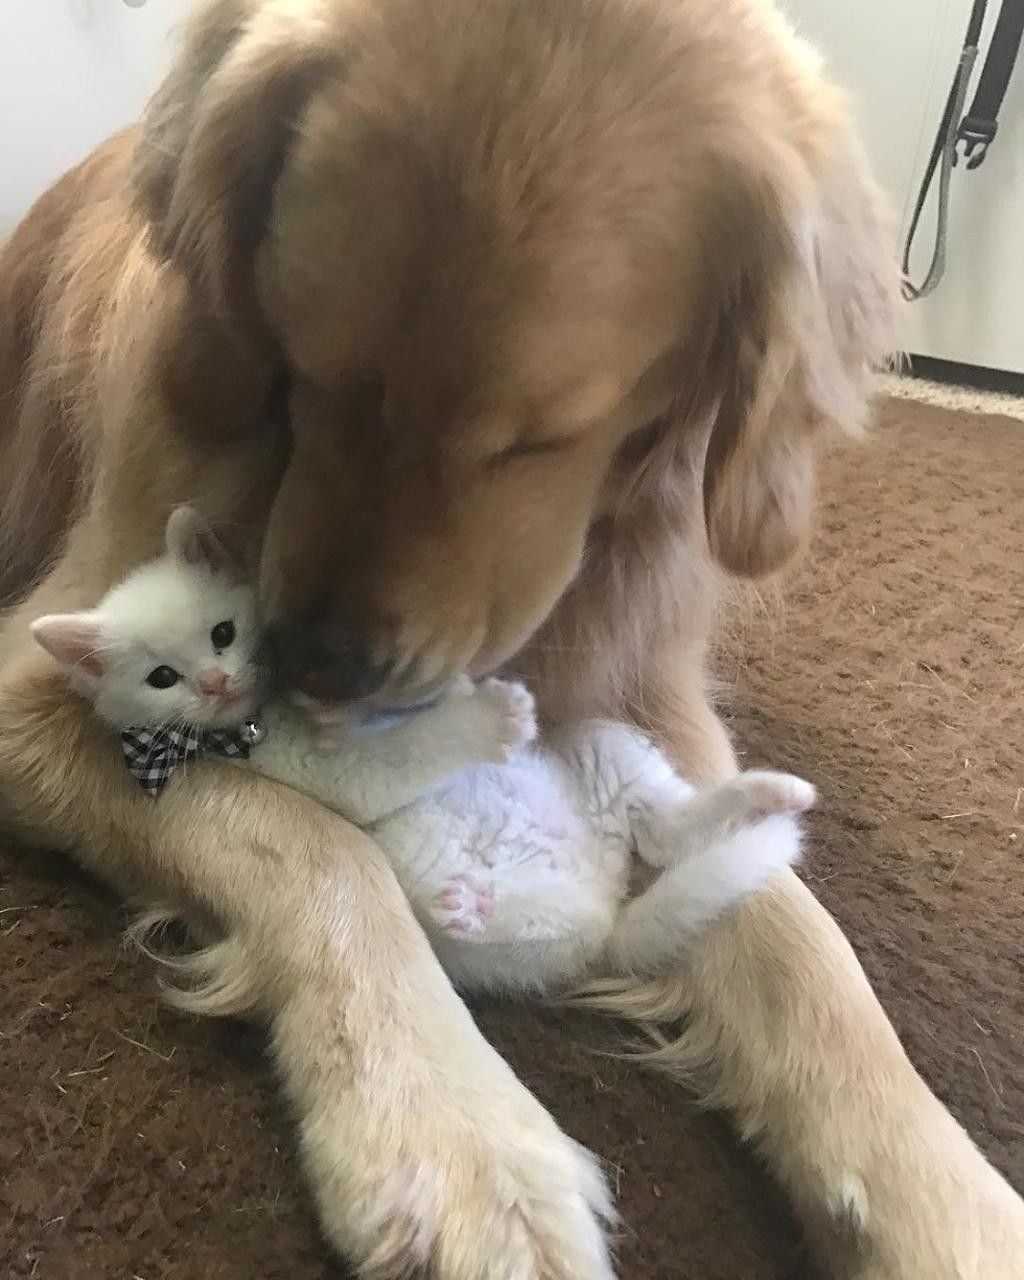 Too too too cute! Reminds me of when my Golden would do that to our kittens.